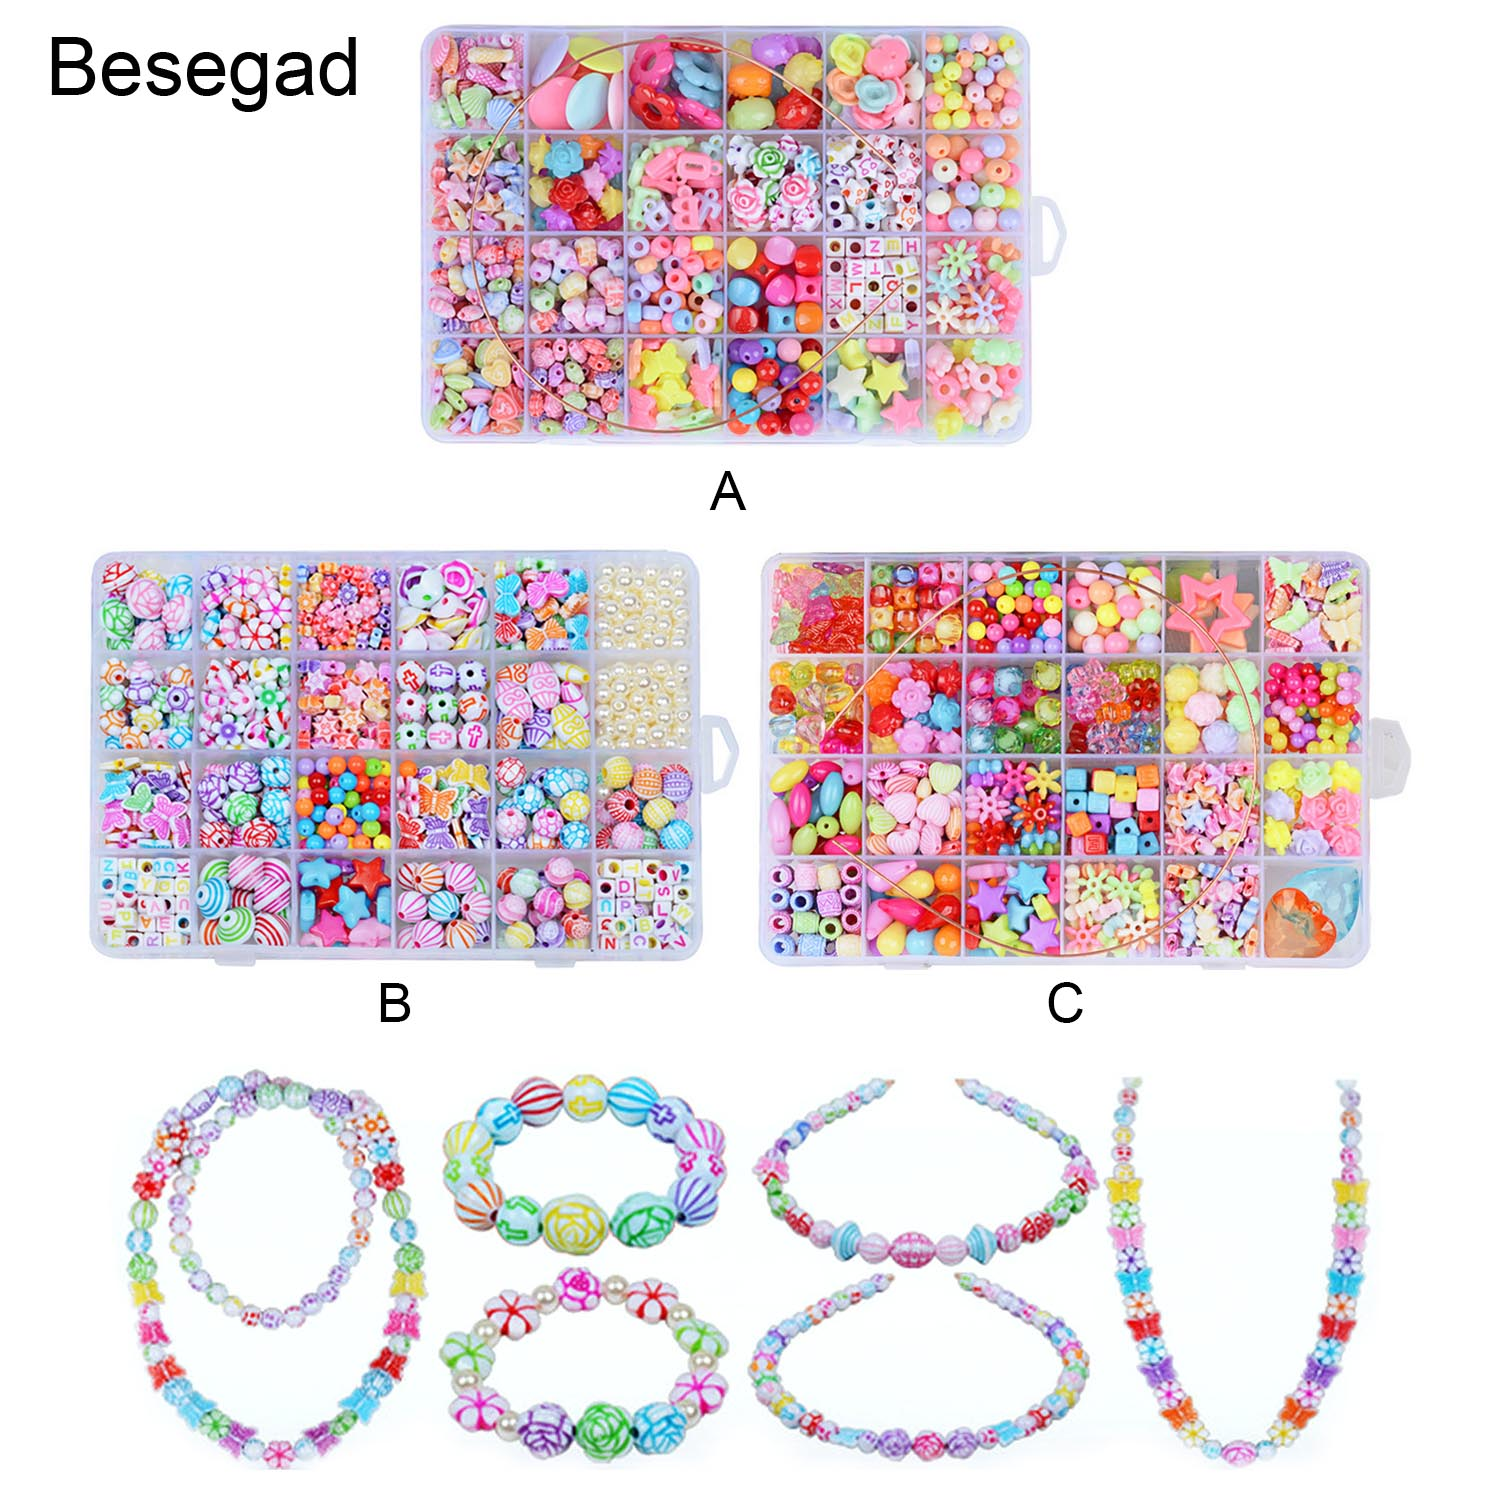 Besegad 550pcs Multicolor Styles Acrylic Craft Beads For Jewelry Making Crafts Kids Toys DIY Bracelets Necklaces Educational Toy